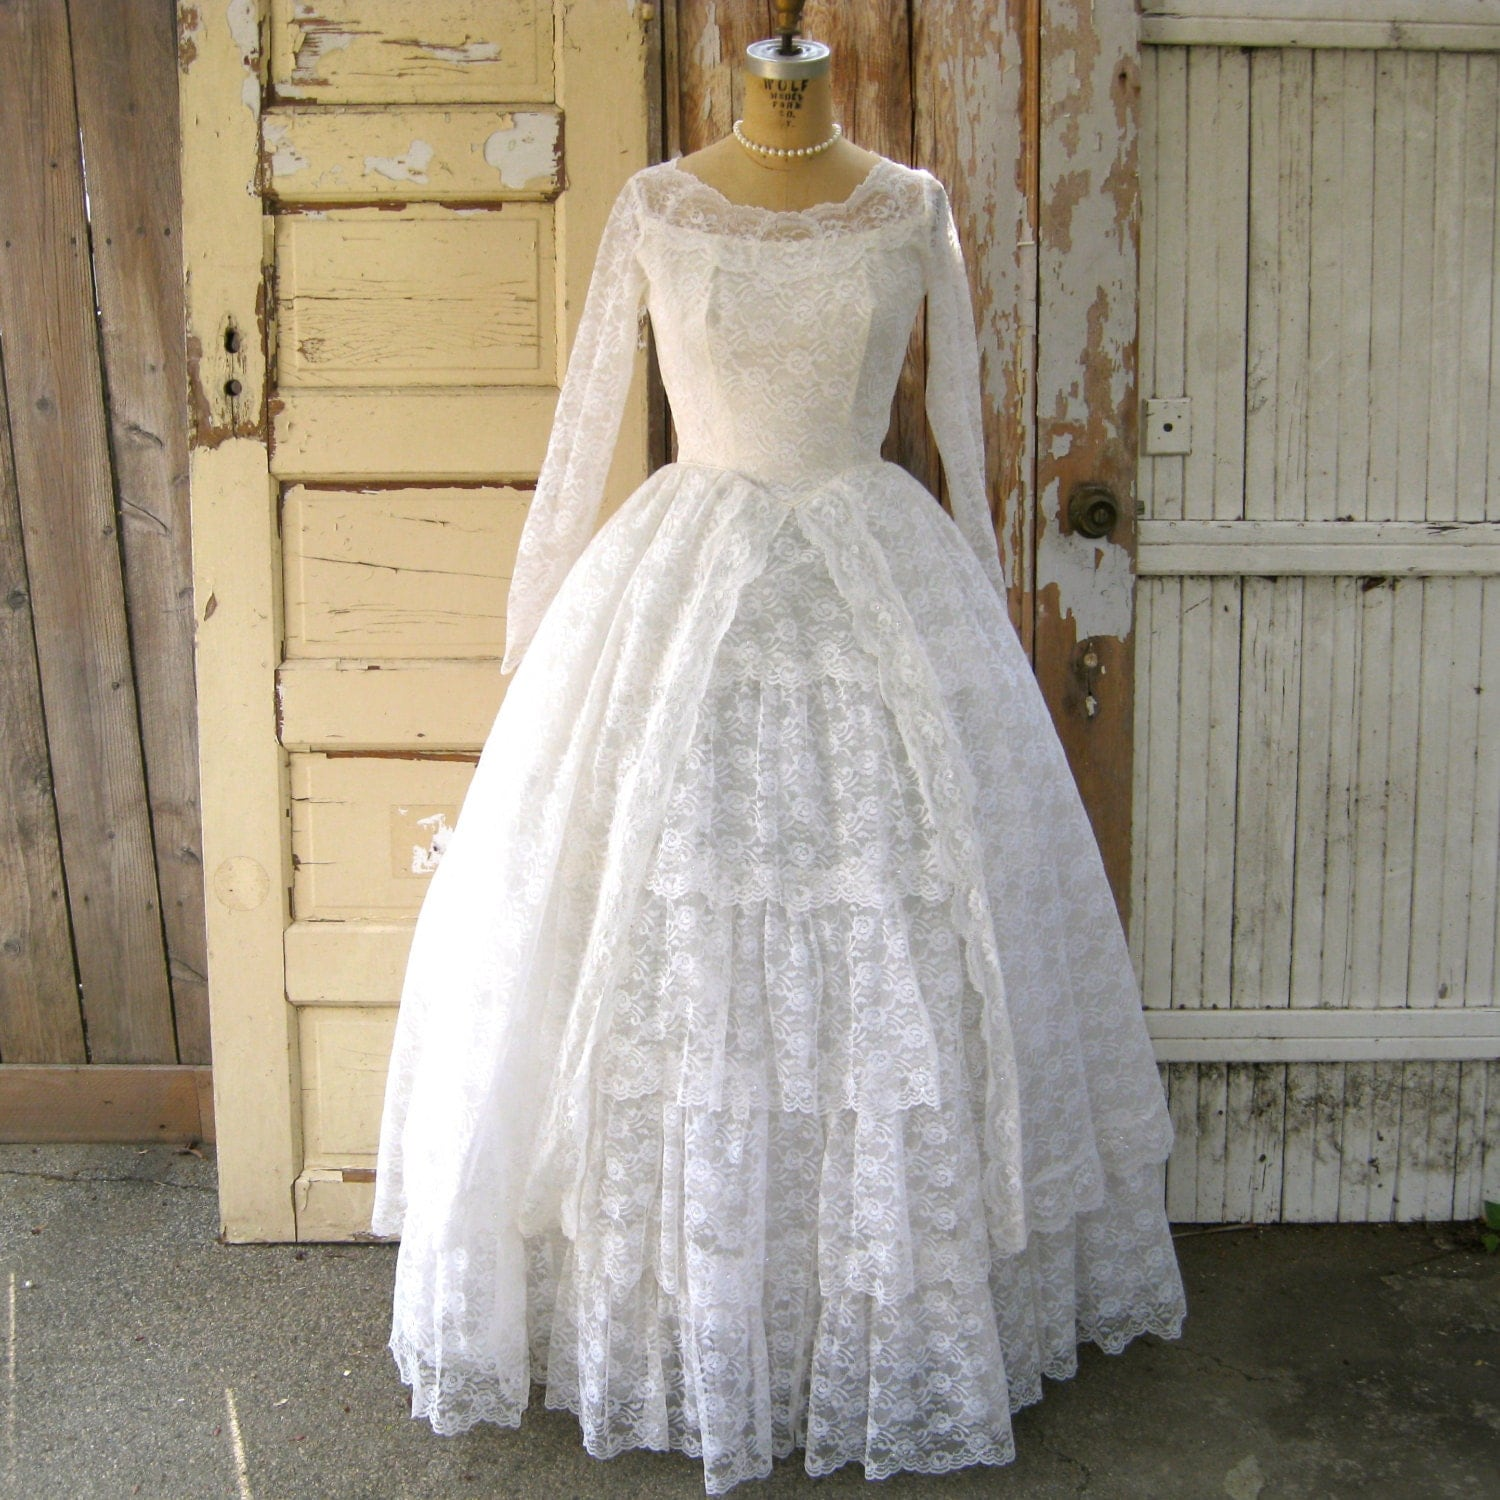 Vintage 1950s Wedding Dress SALE Lace and Tulle Gown with